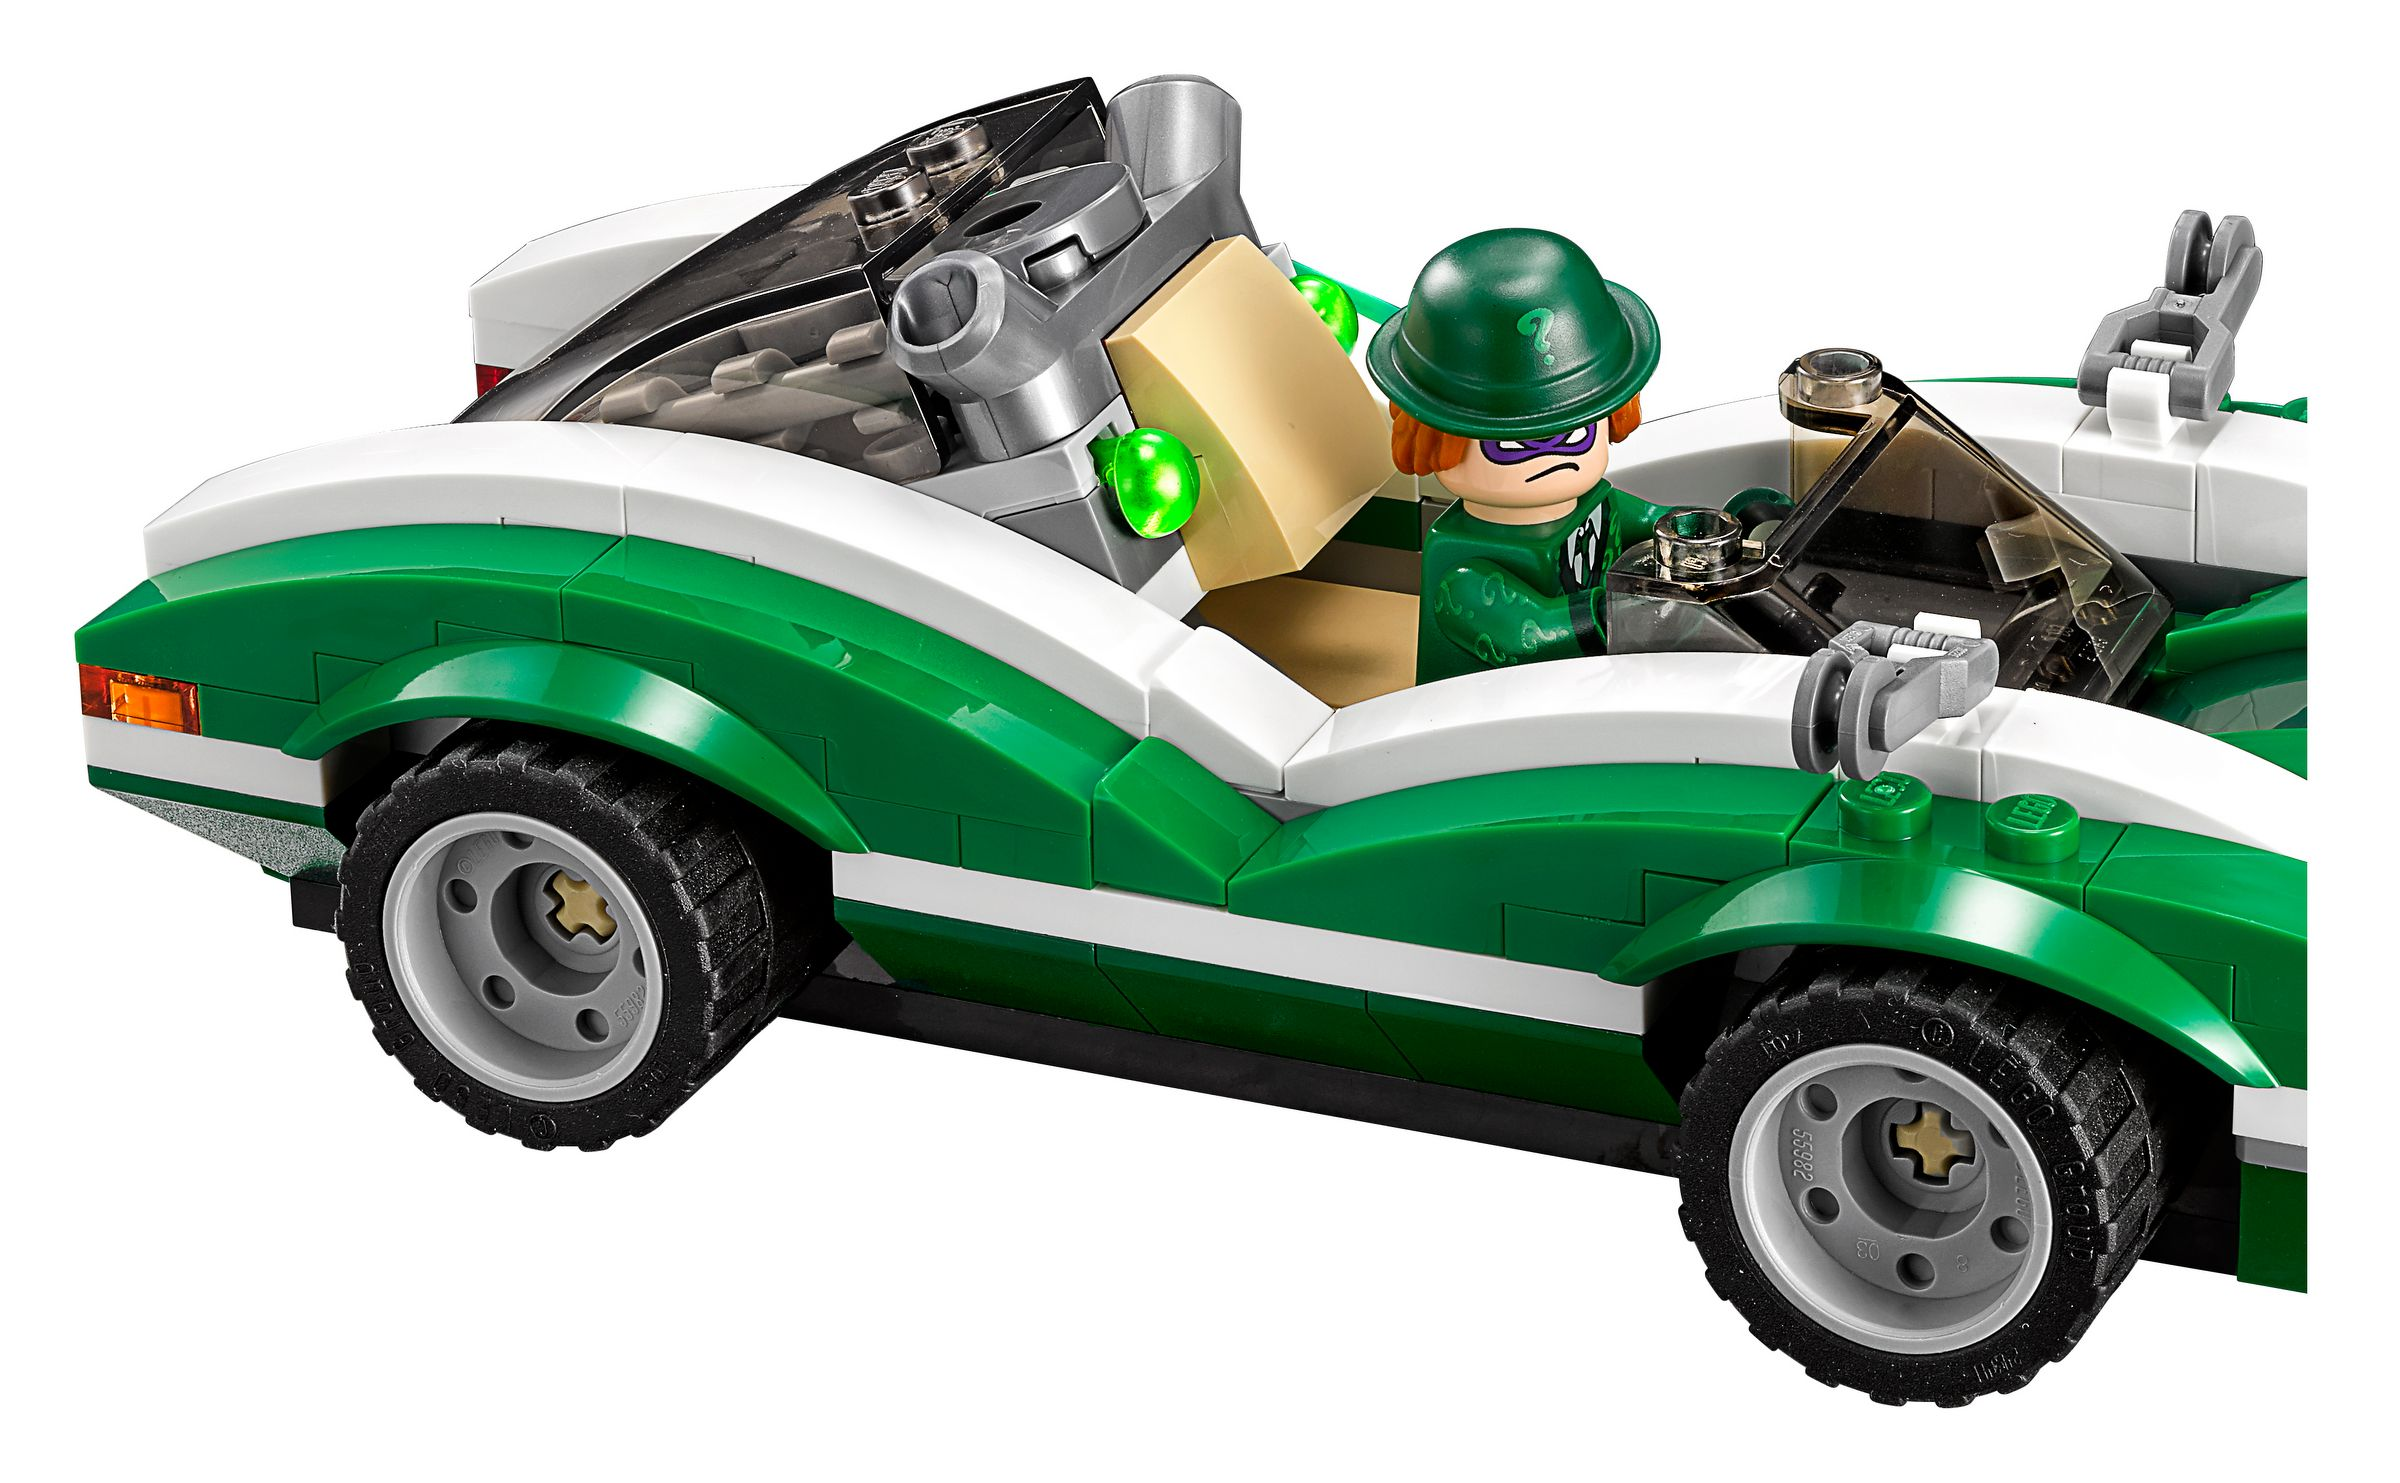 LEGO The LEGO Batman Movie 70903 The Riddler™: Riddle Racer LEGO_70903_alt3.jpg